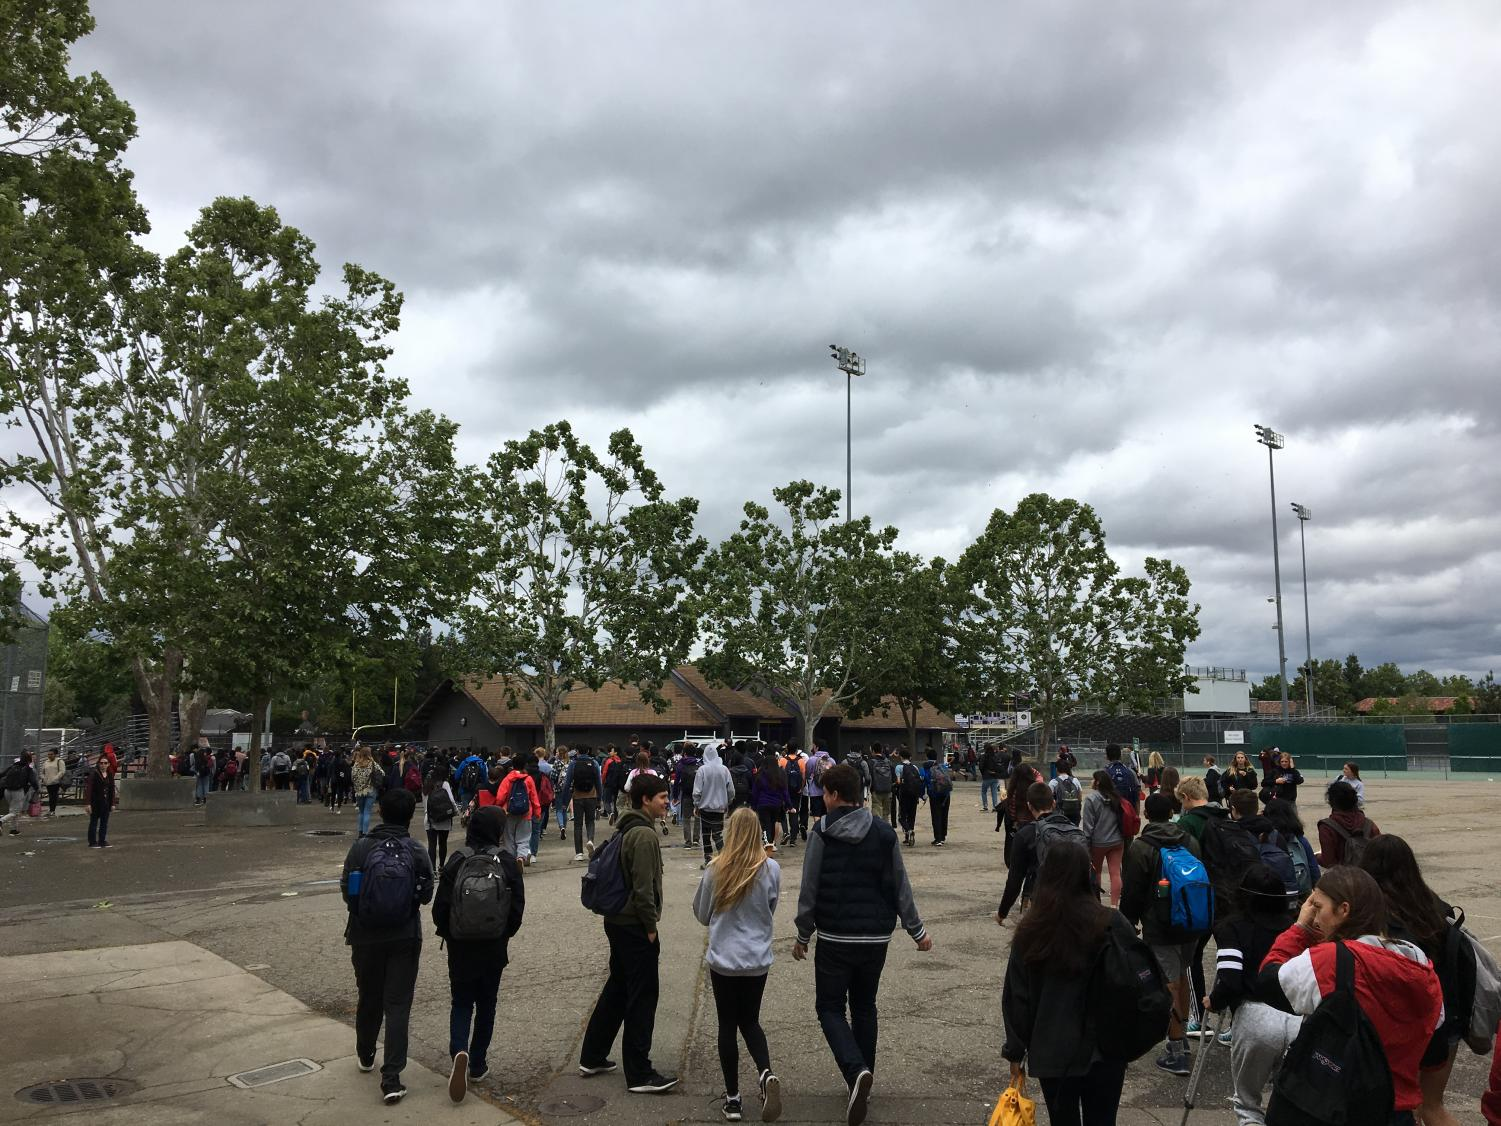 Students were evacuated to the field after the fire alarm was pulled during lunch.